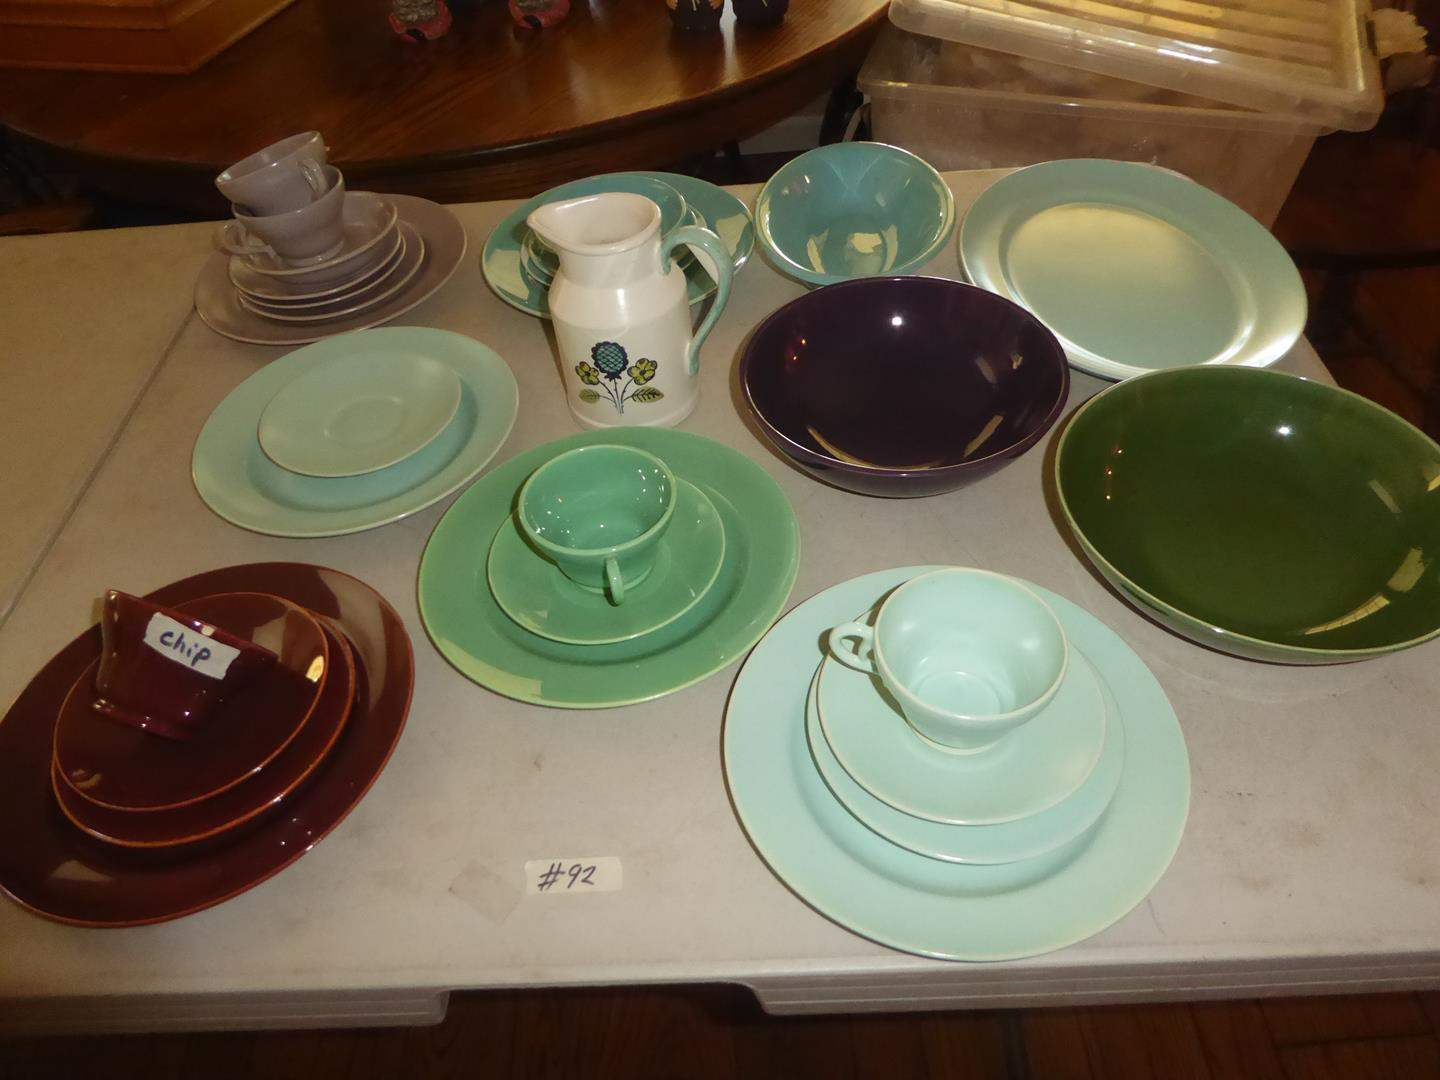 Lot # 92 - Colorful Assorted Vintage Franciscan, GMB Pottery Plates, Saucers, Mugs & Serving Bowls (main image)